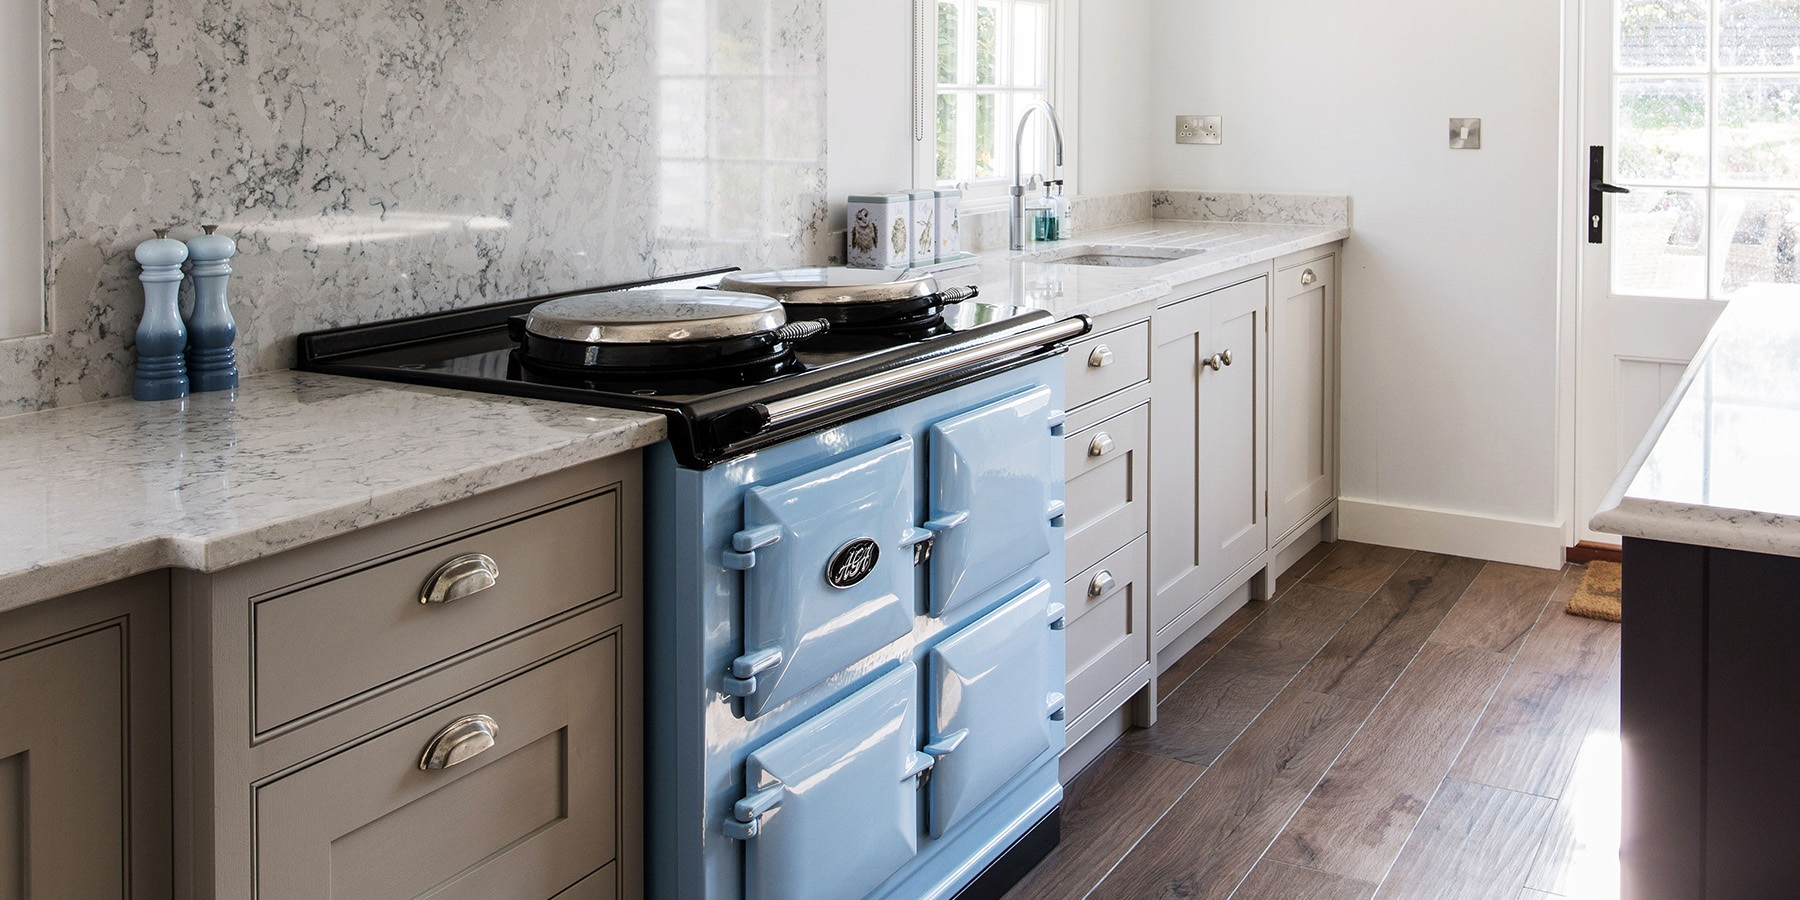 AGA - Burlanes Sevenoaks is an authorised AGA showroom with a fully functioning AGA Total Control